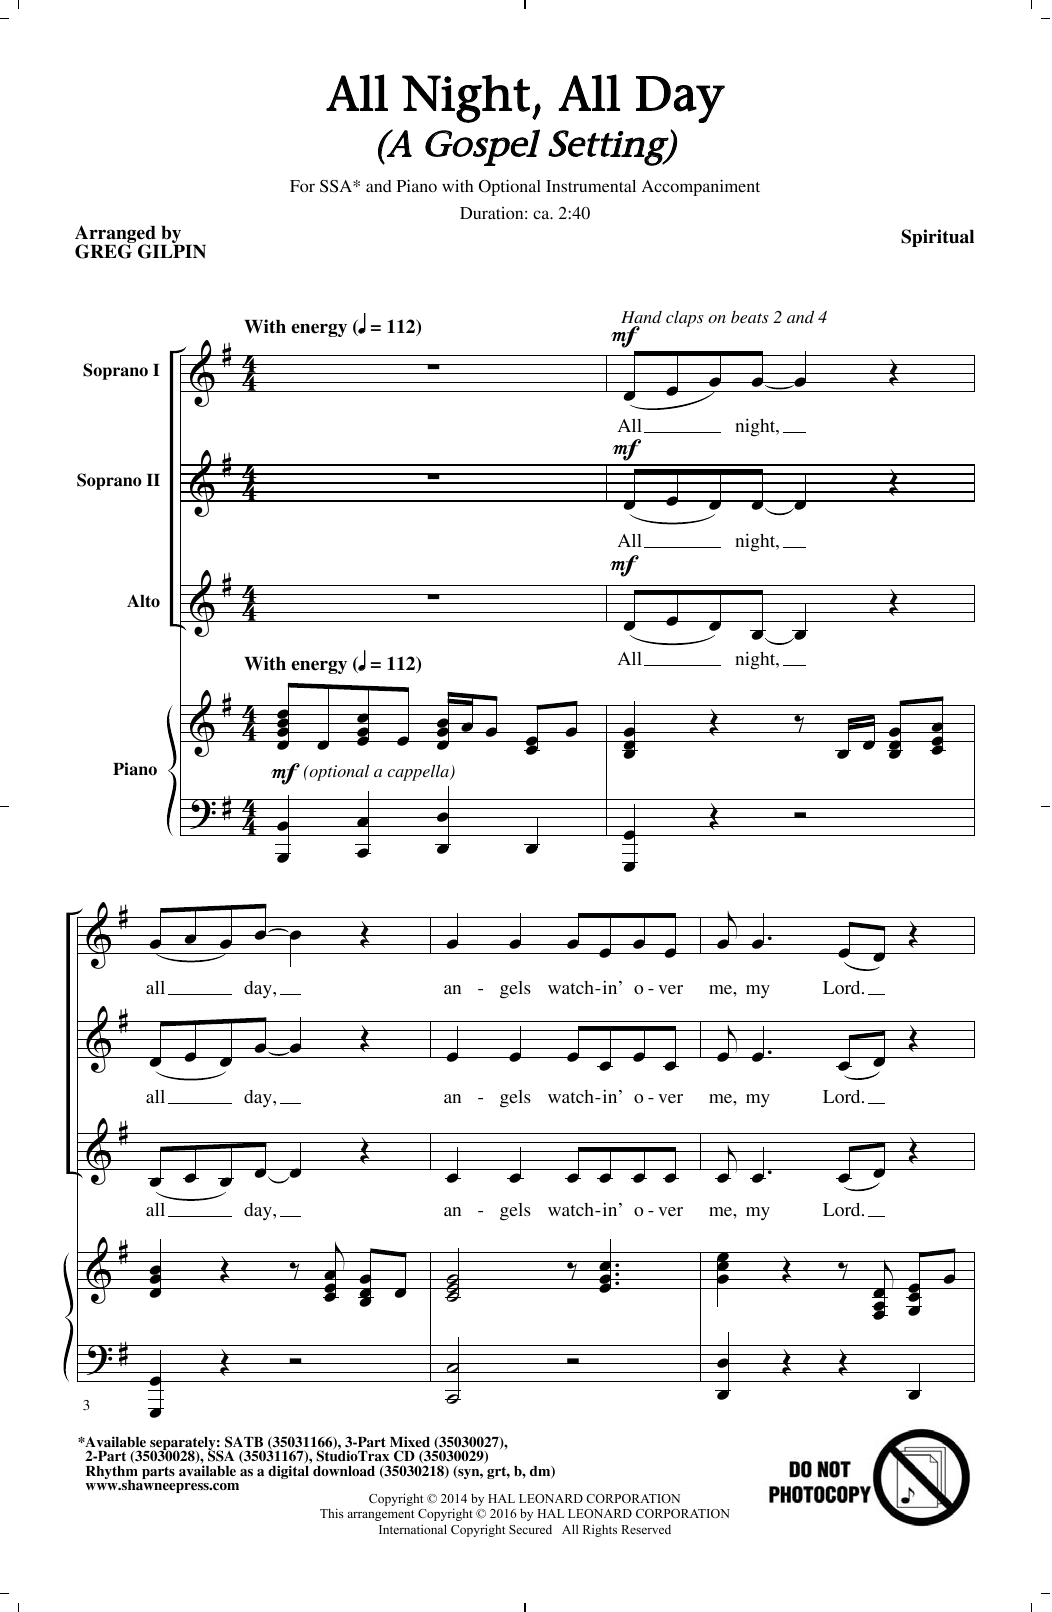 All Night, All Day Sheet Music